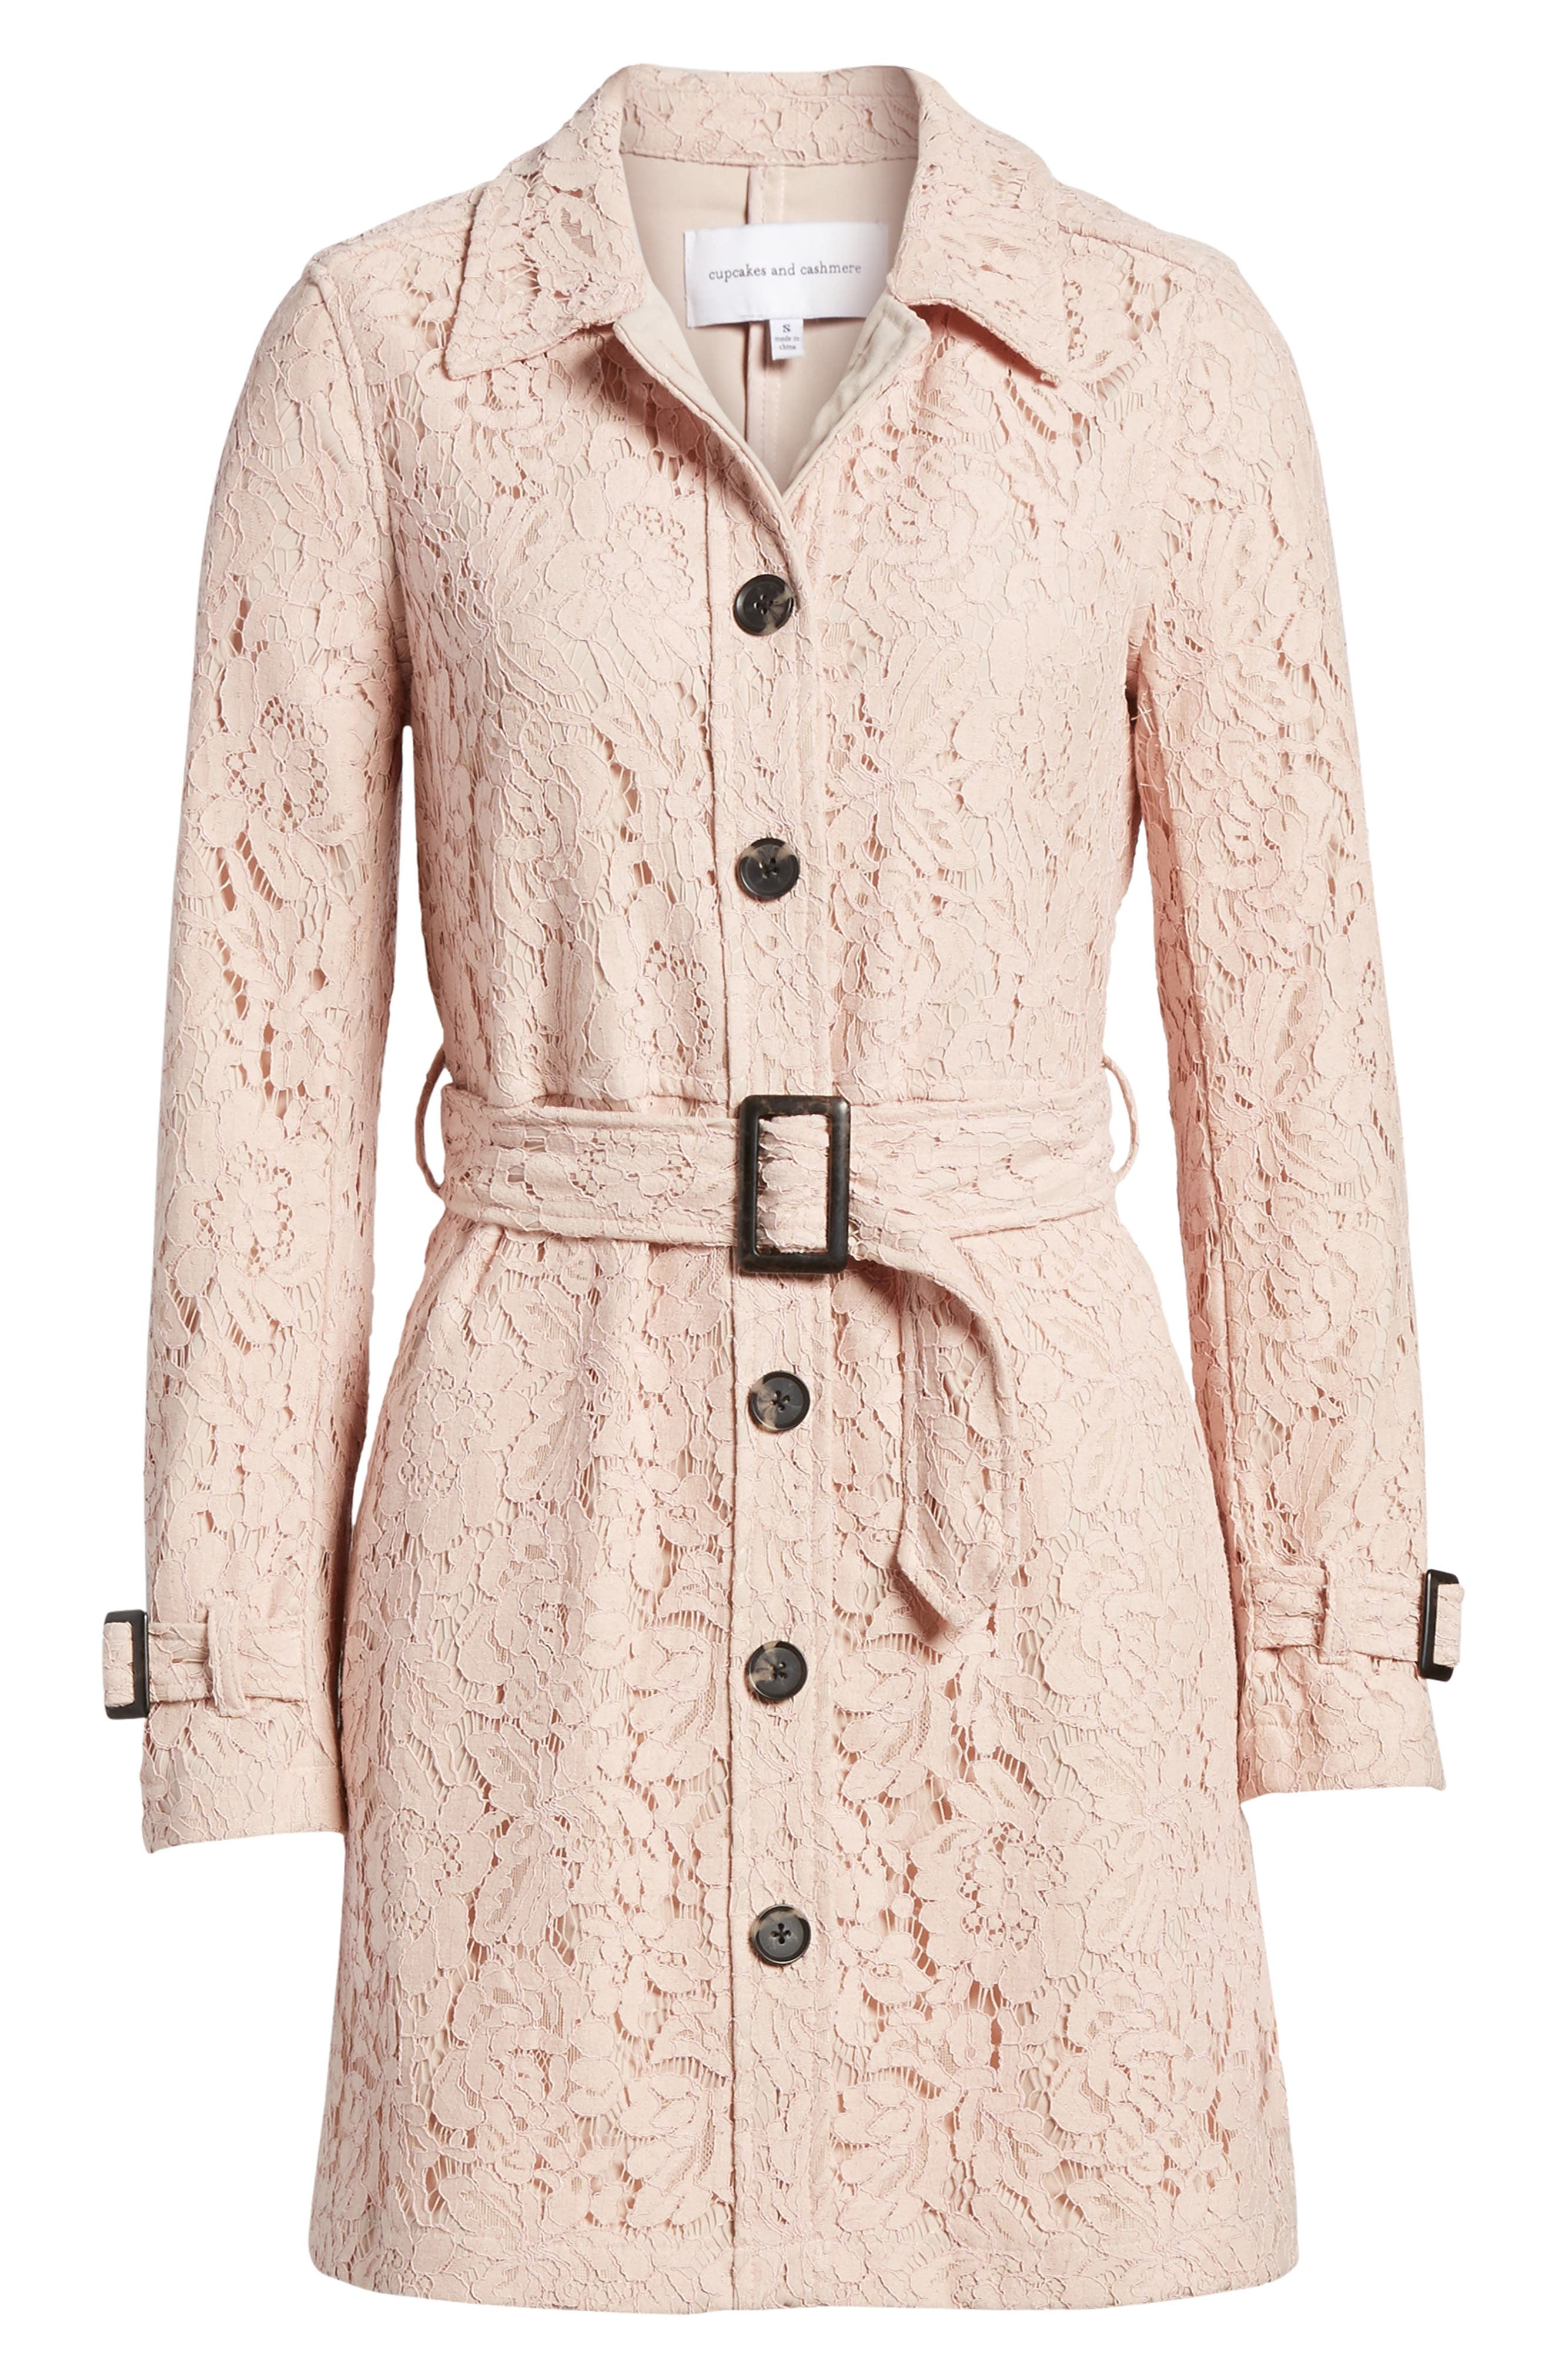 Auretta Lace Trench Coat,                             Alternate thumbnail 6, color,                             680